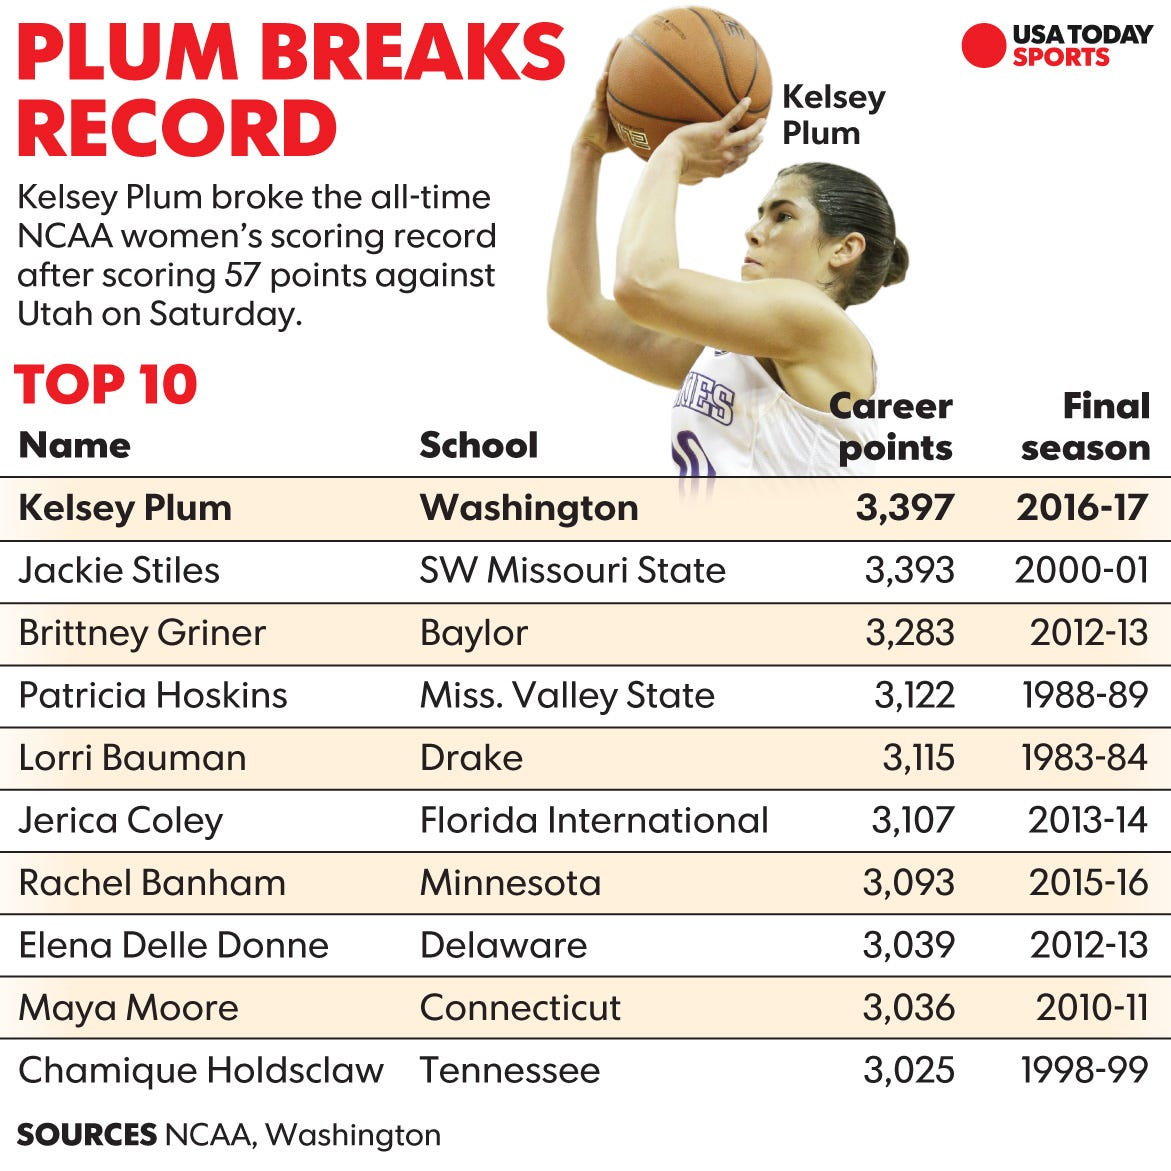 Kelsey plum major - Neighbors Also Expects Plum To Complain In The Coming Days About Her Three Missed Free Throws That Could Have Given Her 60 And A Share Of The Ncaa